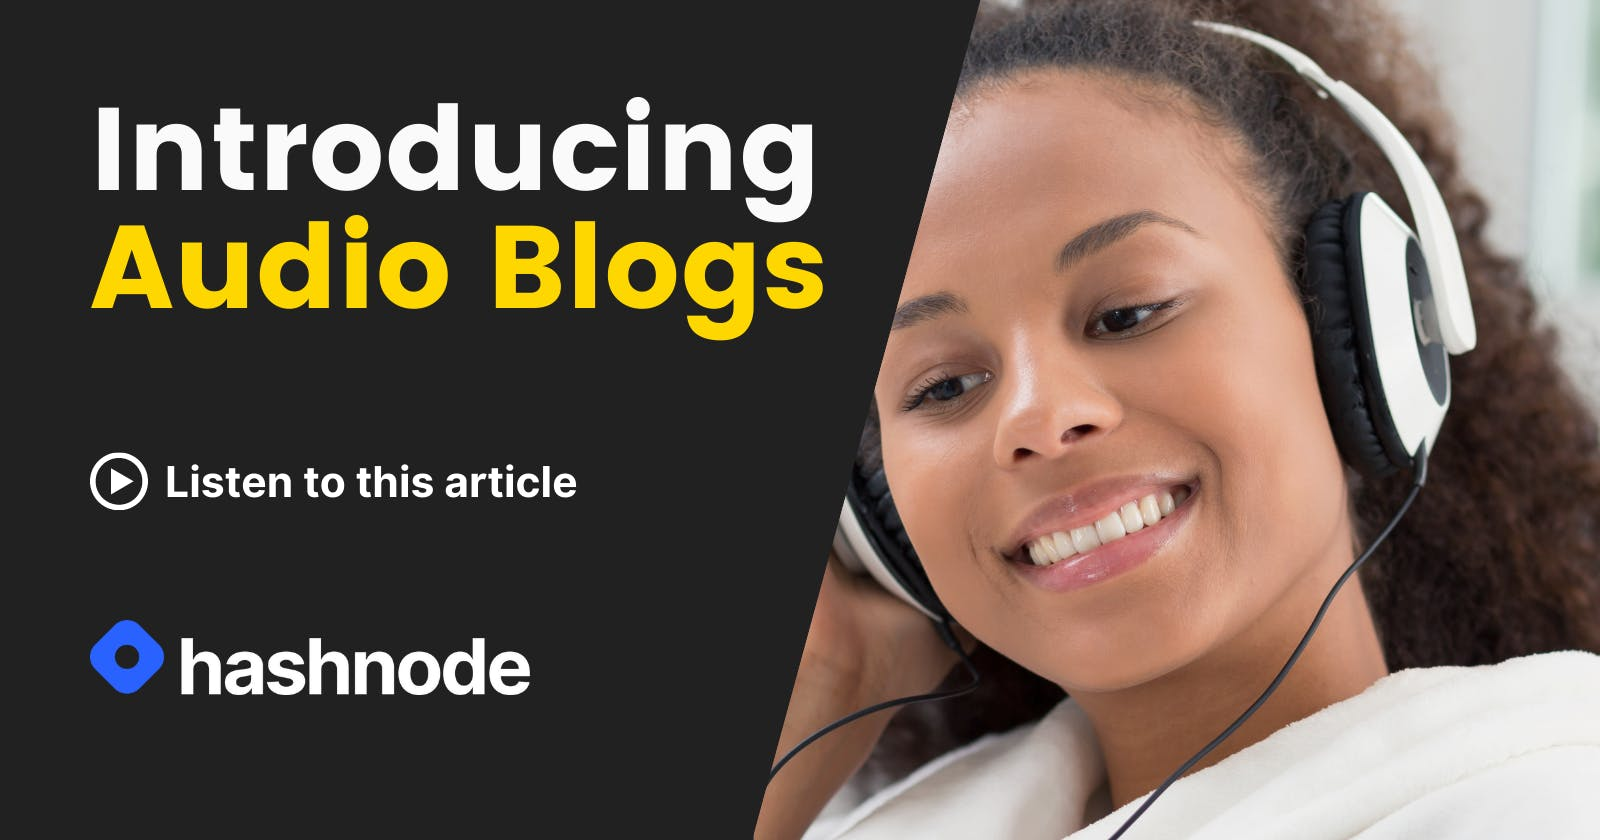 Introducing Audio Blogs on Hashnode. Now listen to articles automatically!